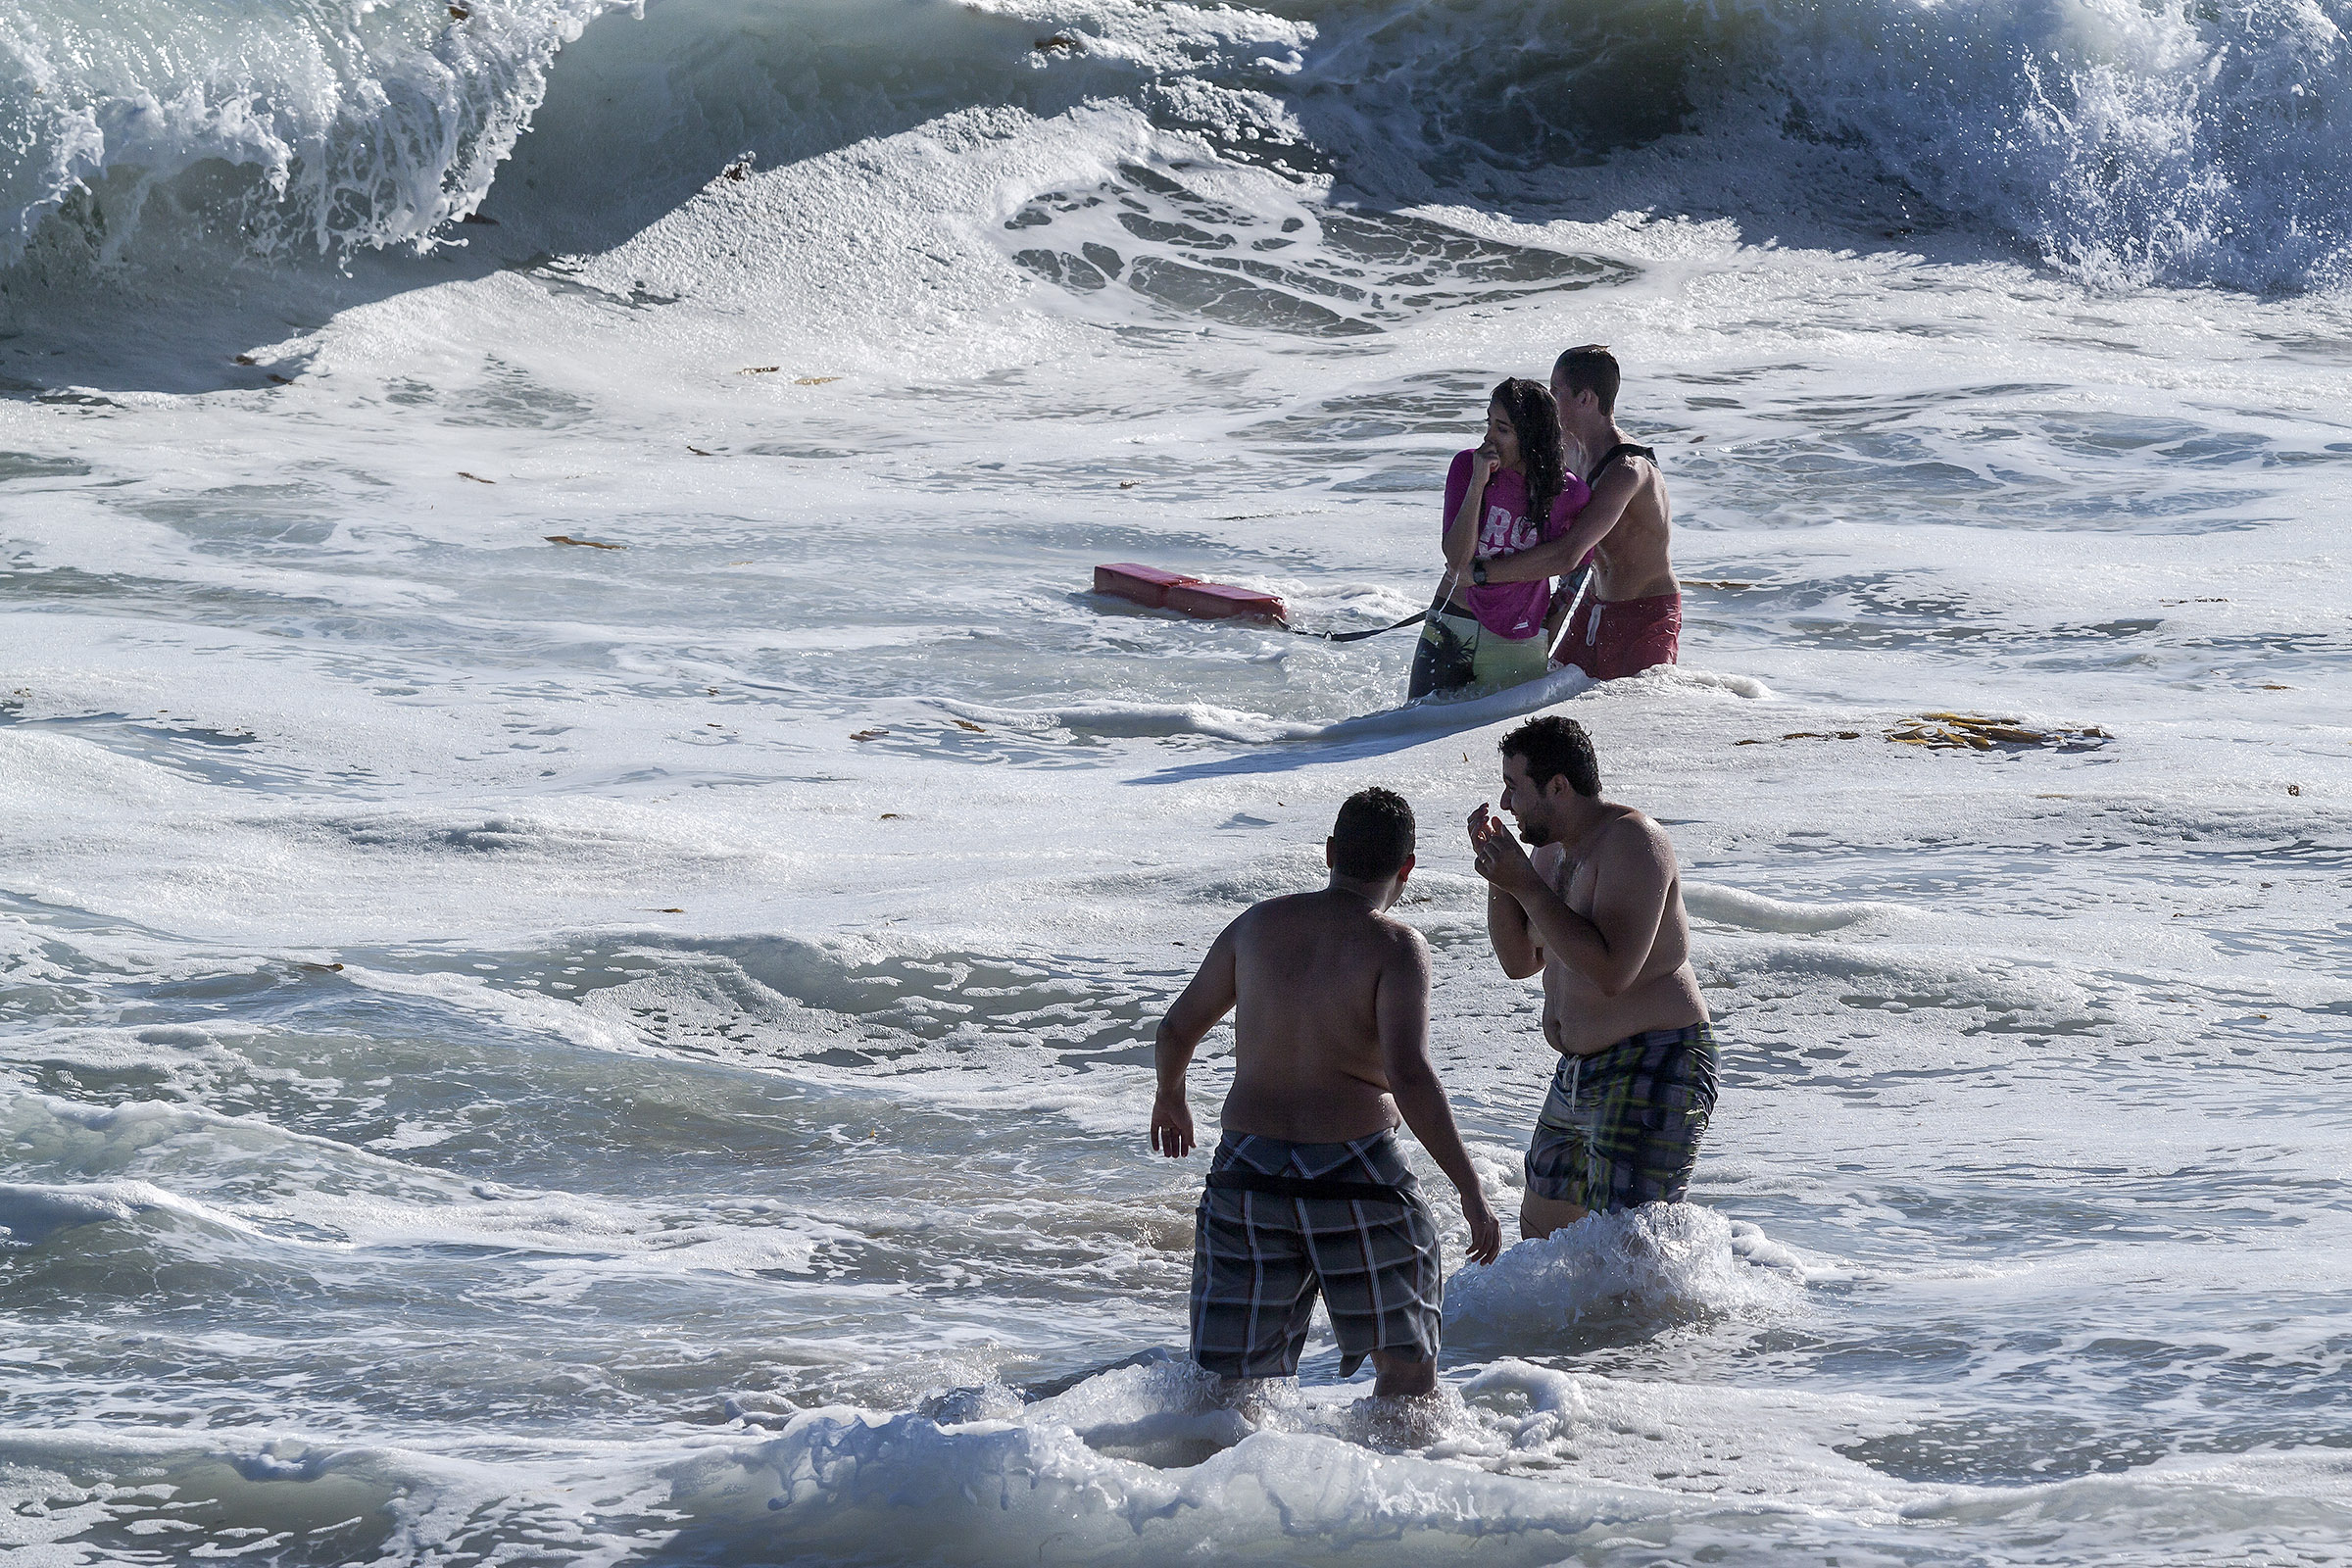 A rookie seasonal guard aids a swimmer in large surf at  Main Beach this weekend. Photo by Mitch Ridder